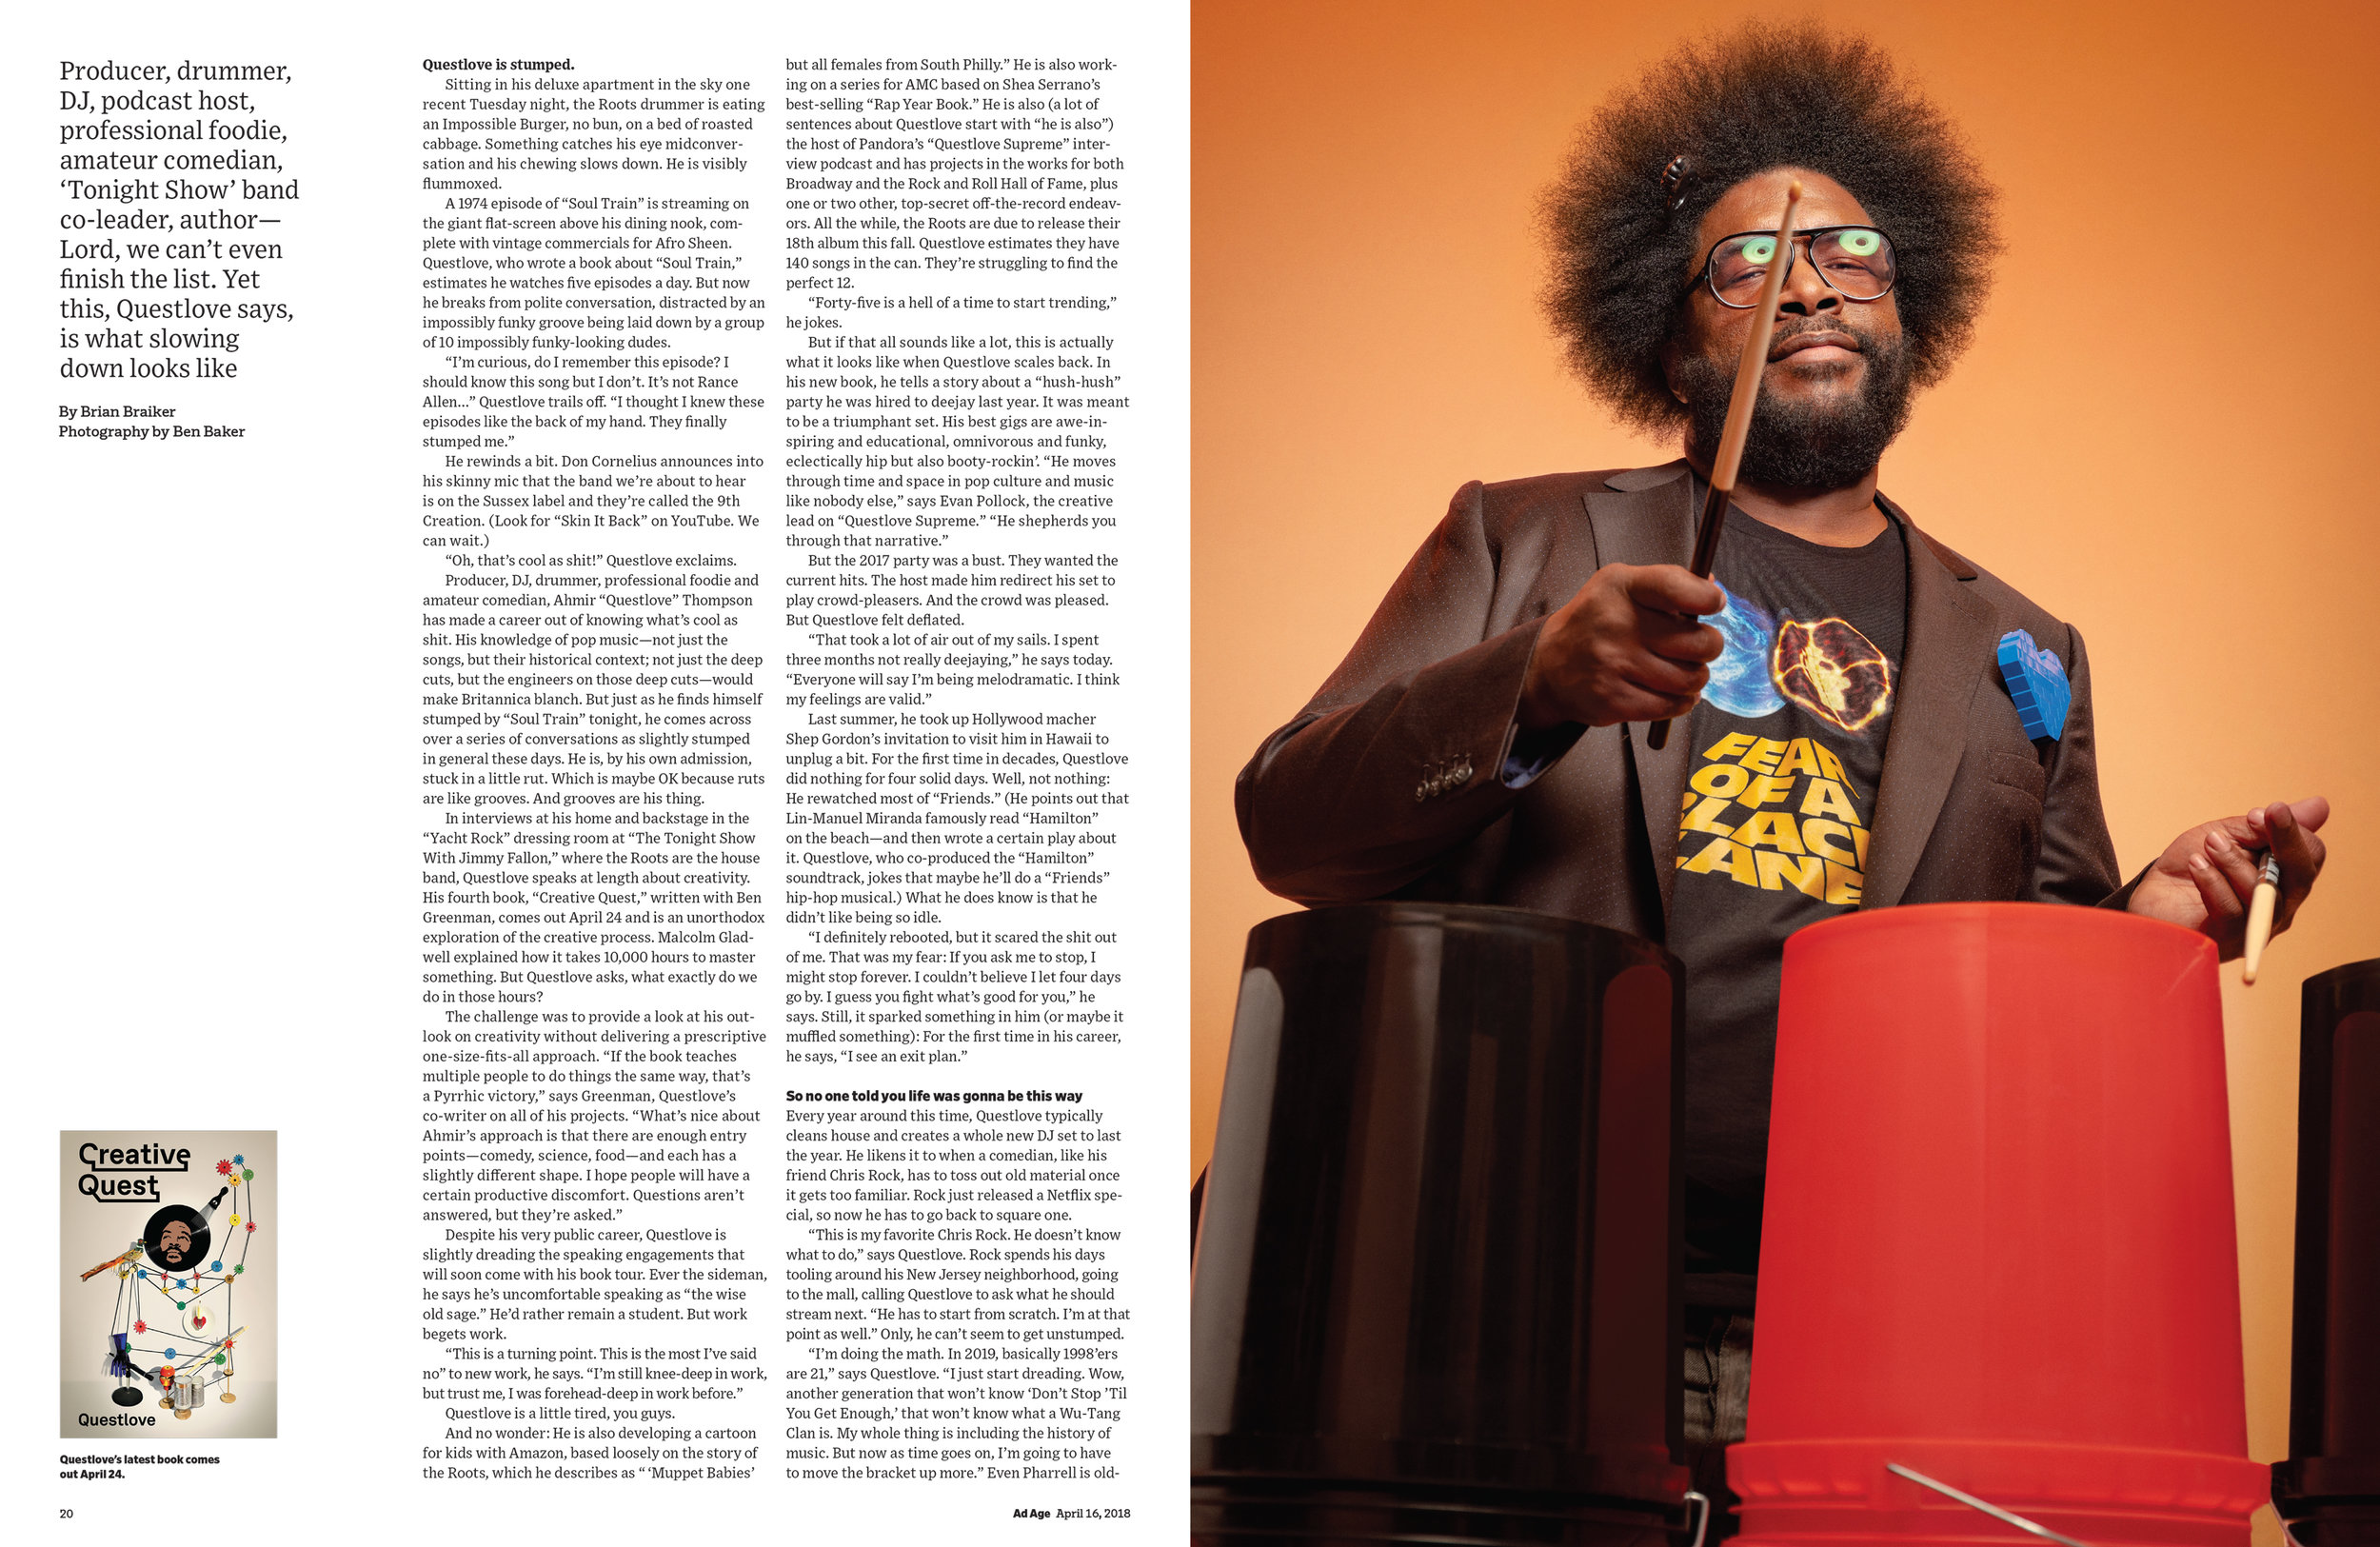 questlove_feature2_small.jpg